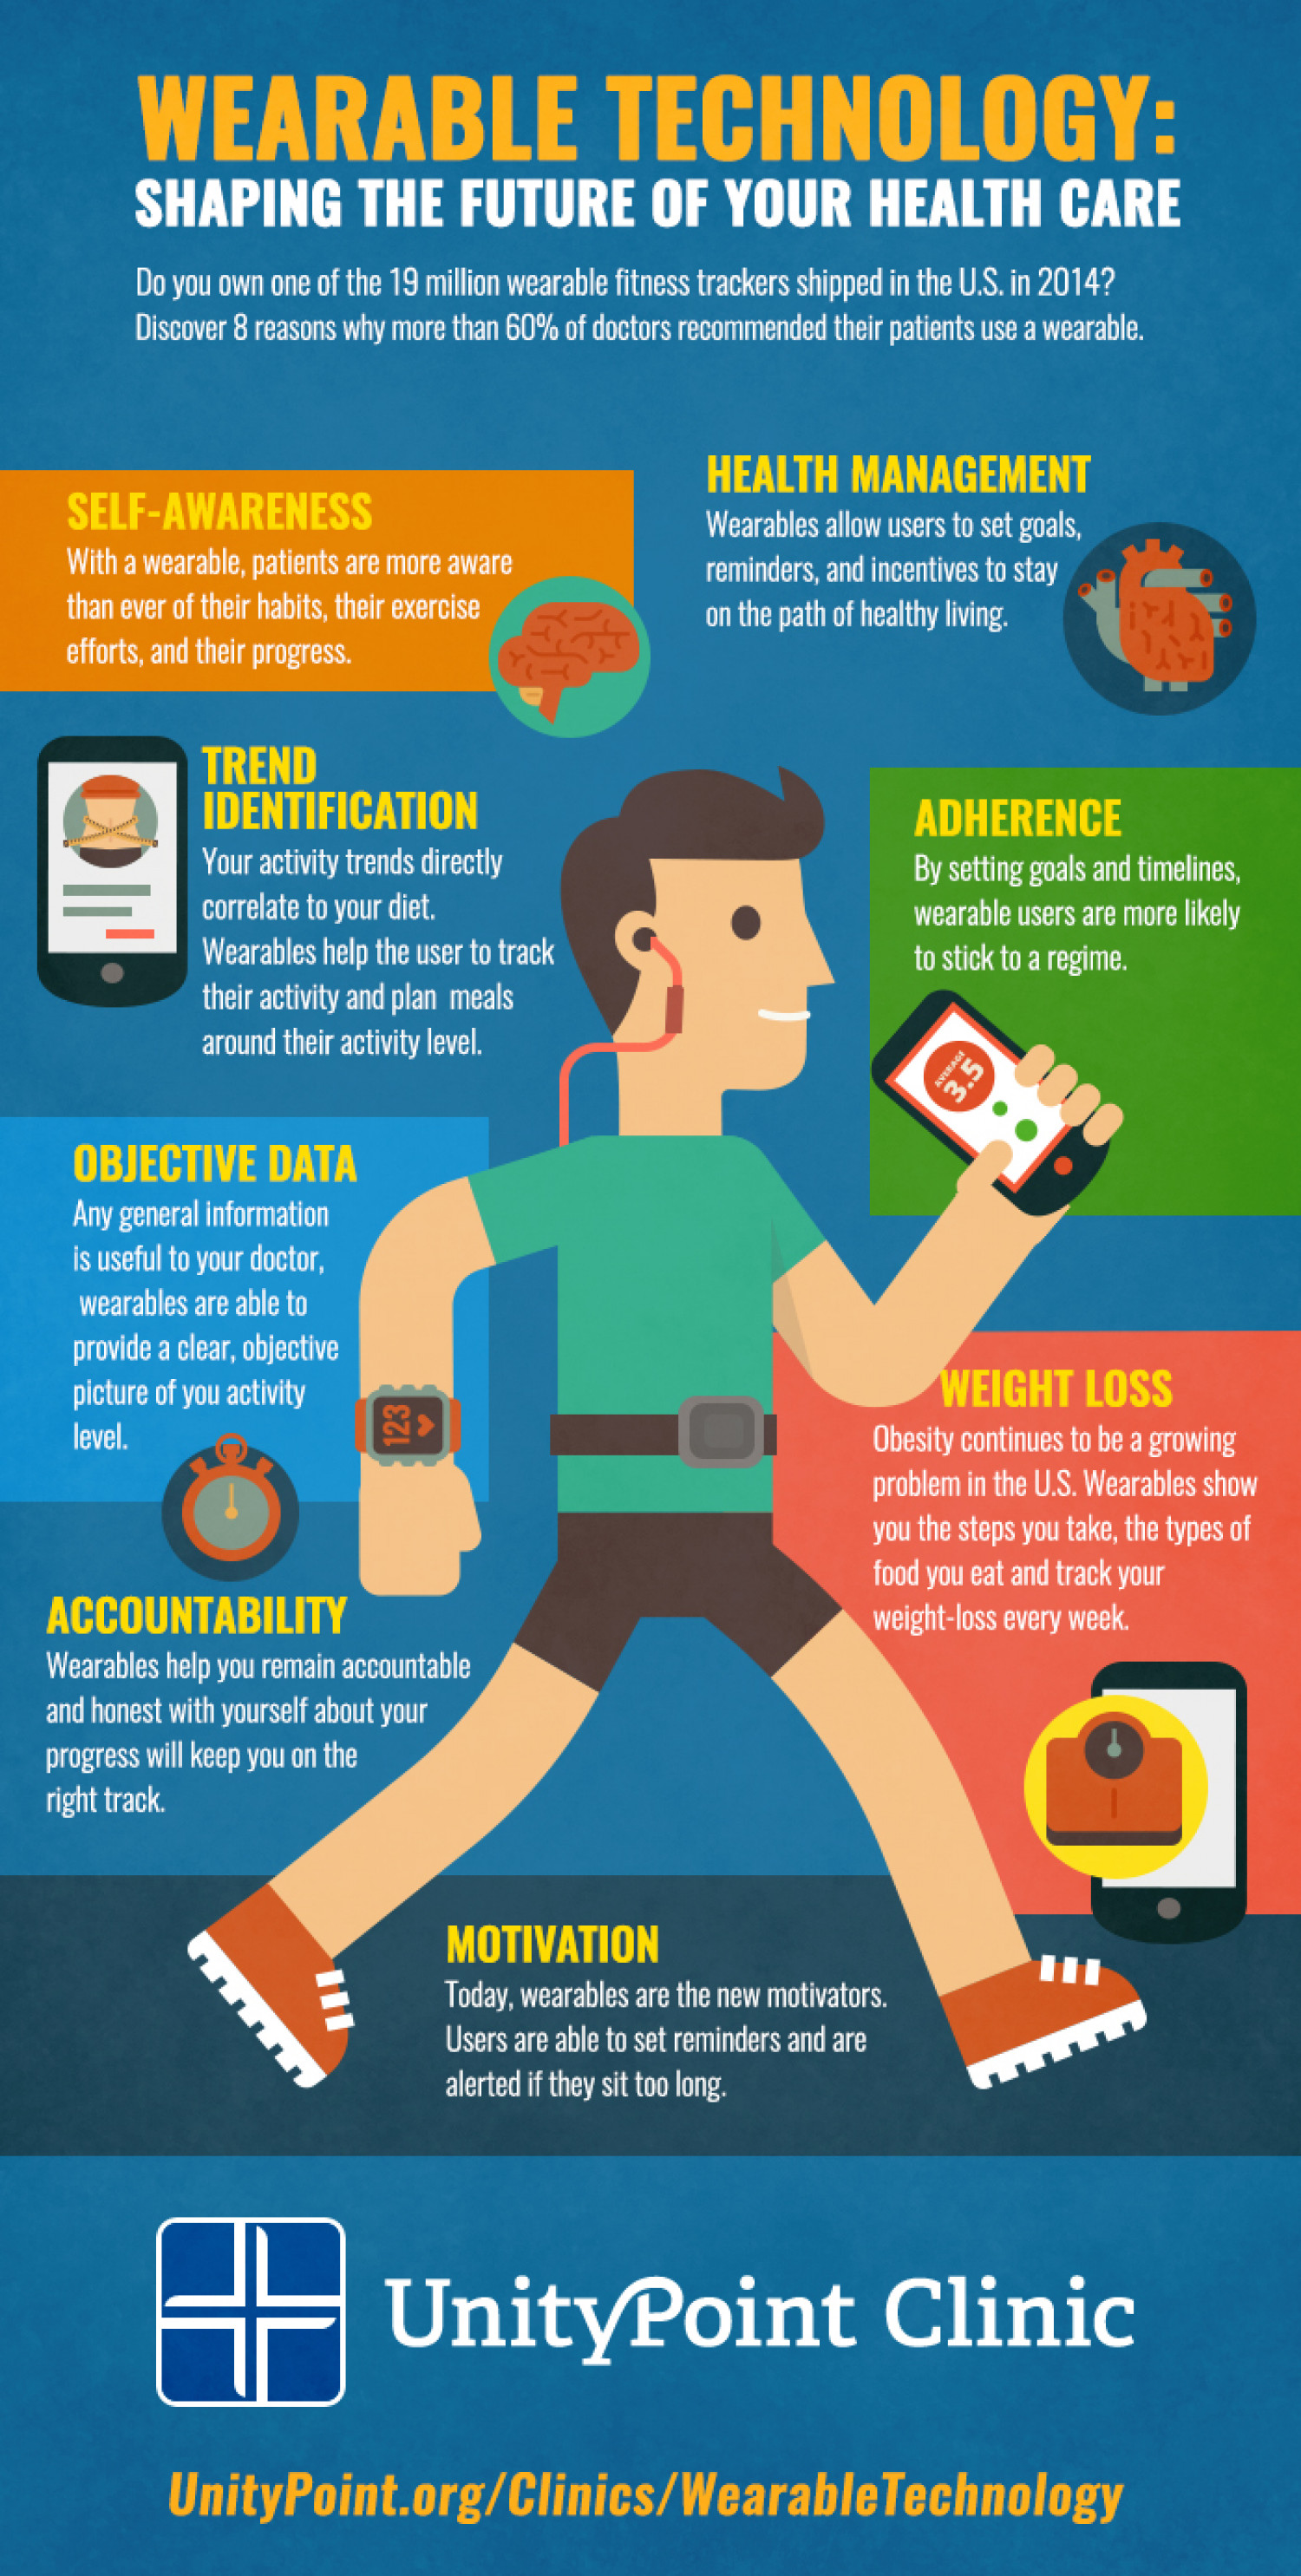 Wearable Technology: Shaping the Future of Your Health Care Infographic